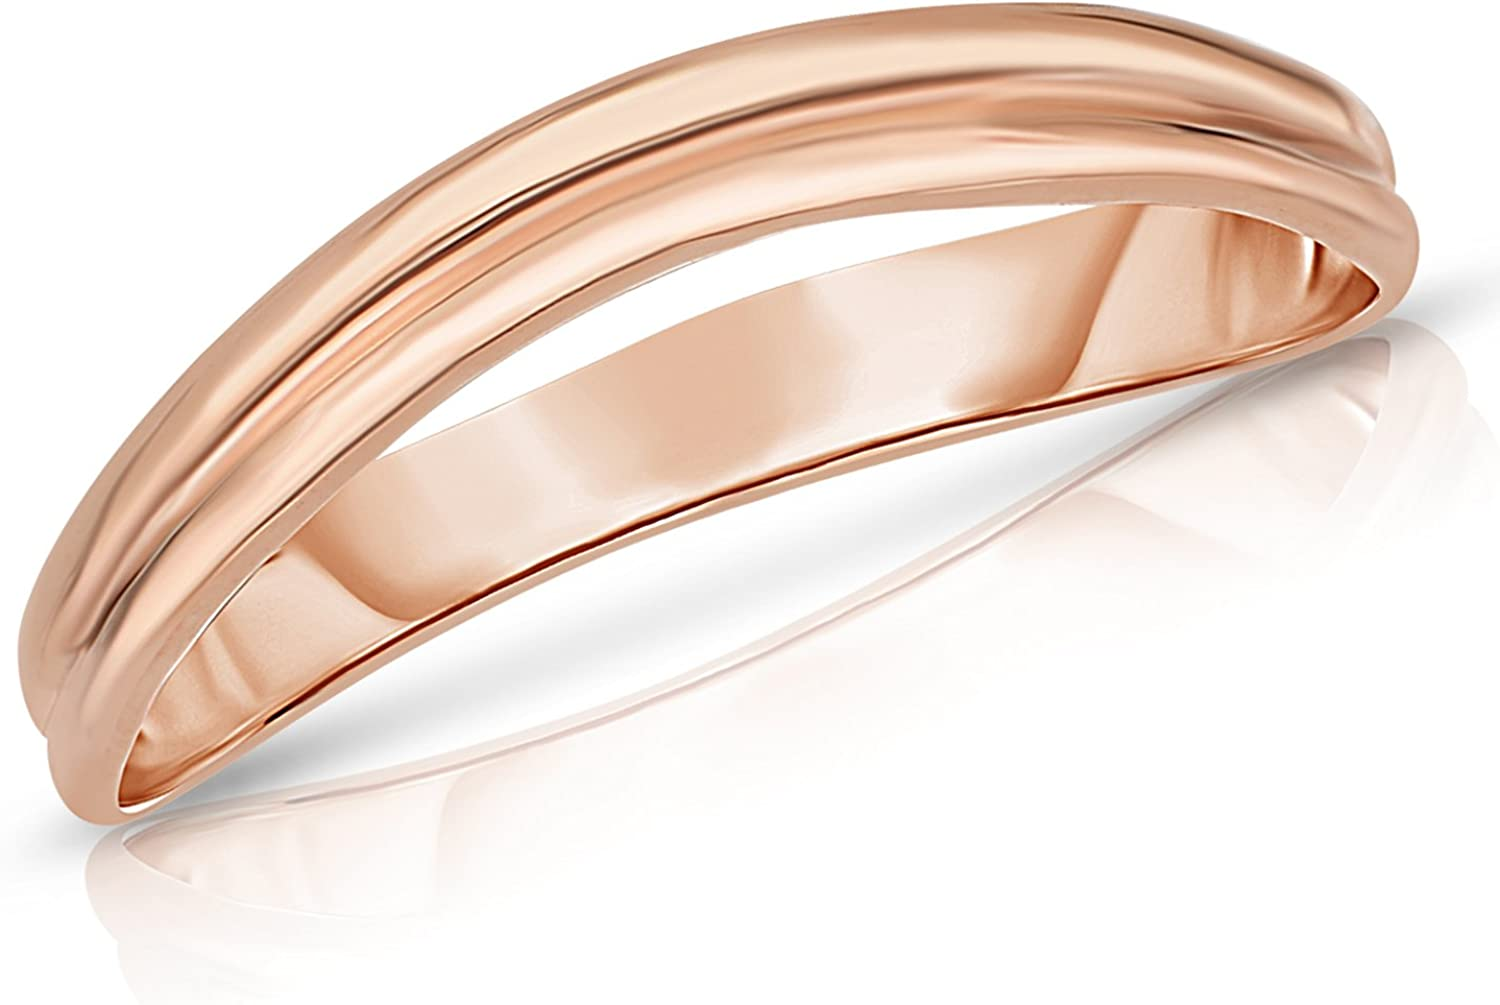 Floreo 10k Fine Gold Comfort Fit Curved Double Wave Thumb Ring (3mm)